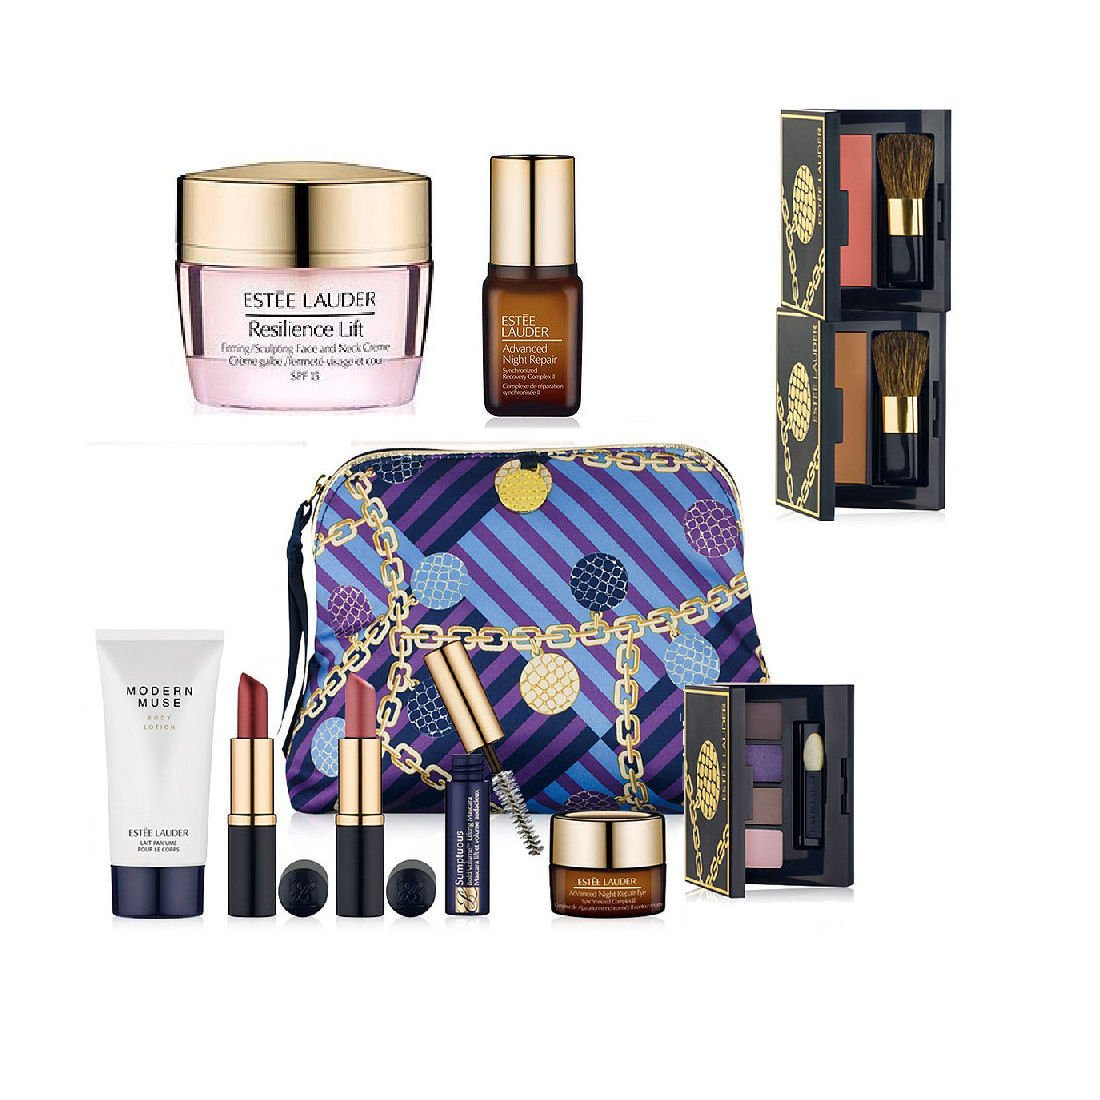 New-Estee-Lauder-Fall-9pc-Skincare-Makeup-Gift-Set-165-Value-with-Cosmetic-Bag-Macy-s-Exclusive